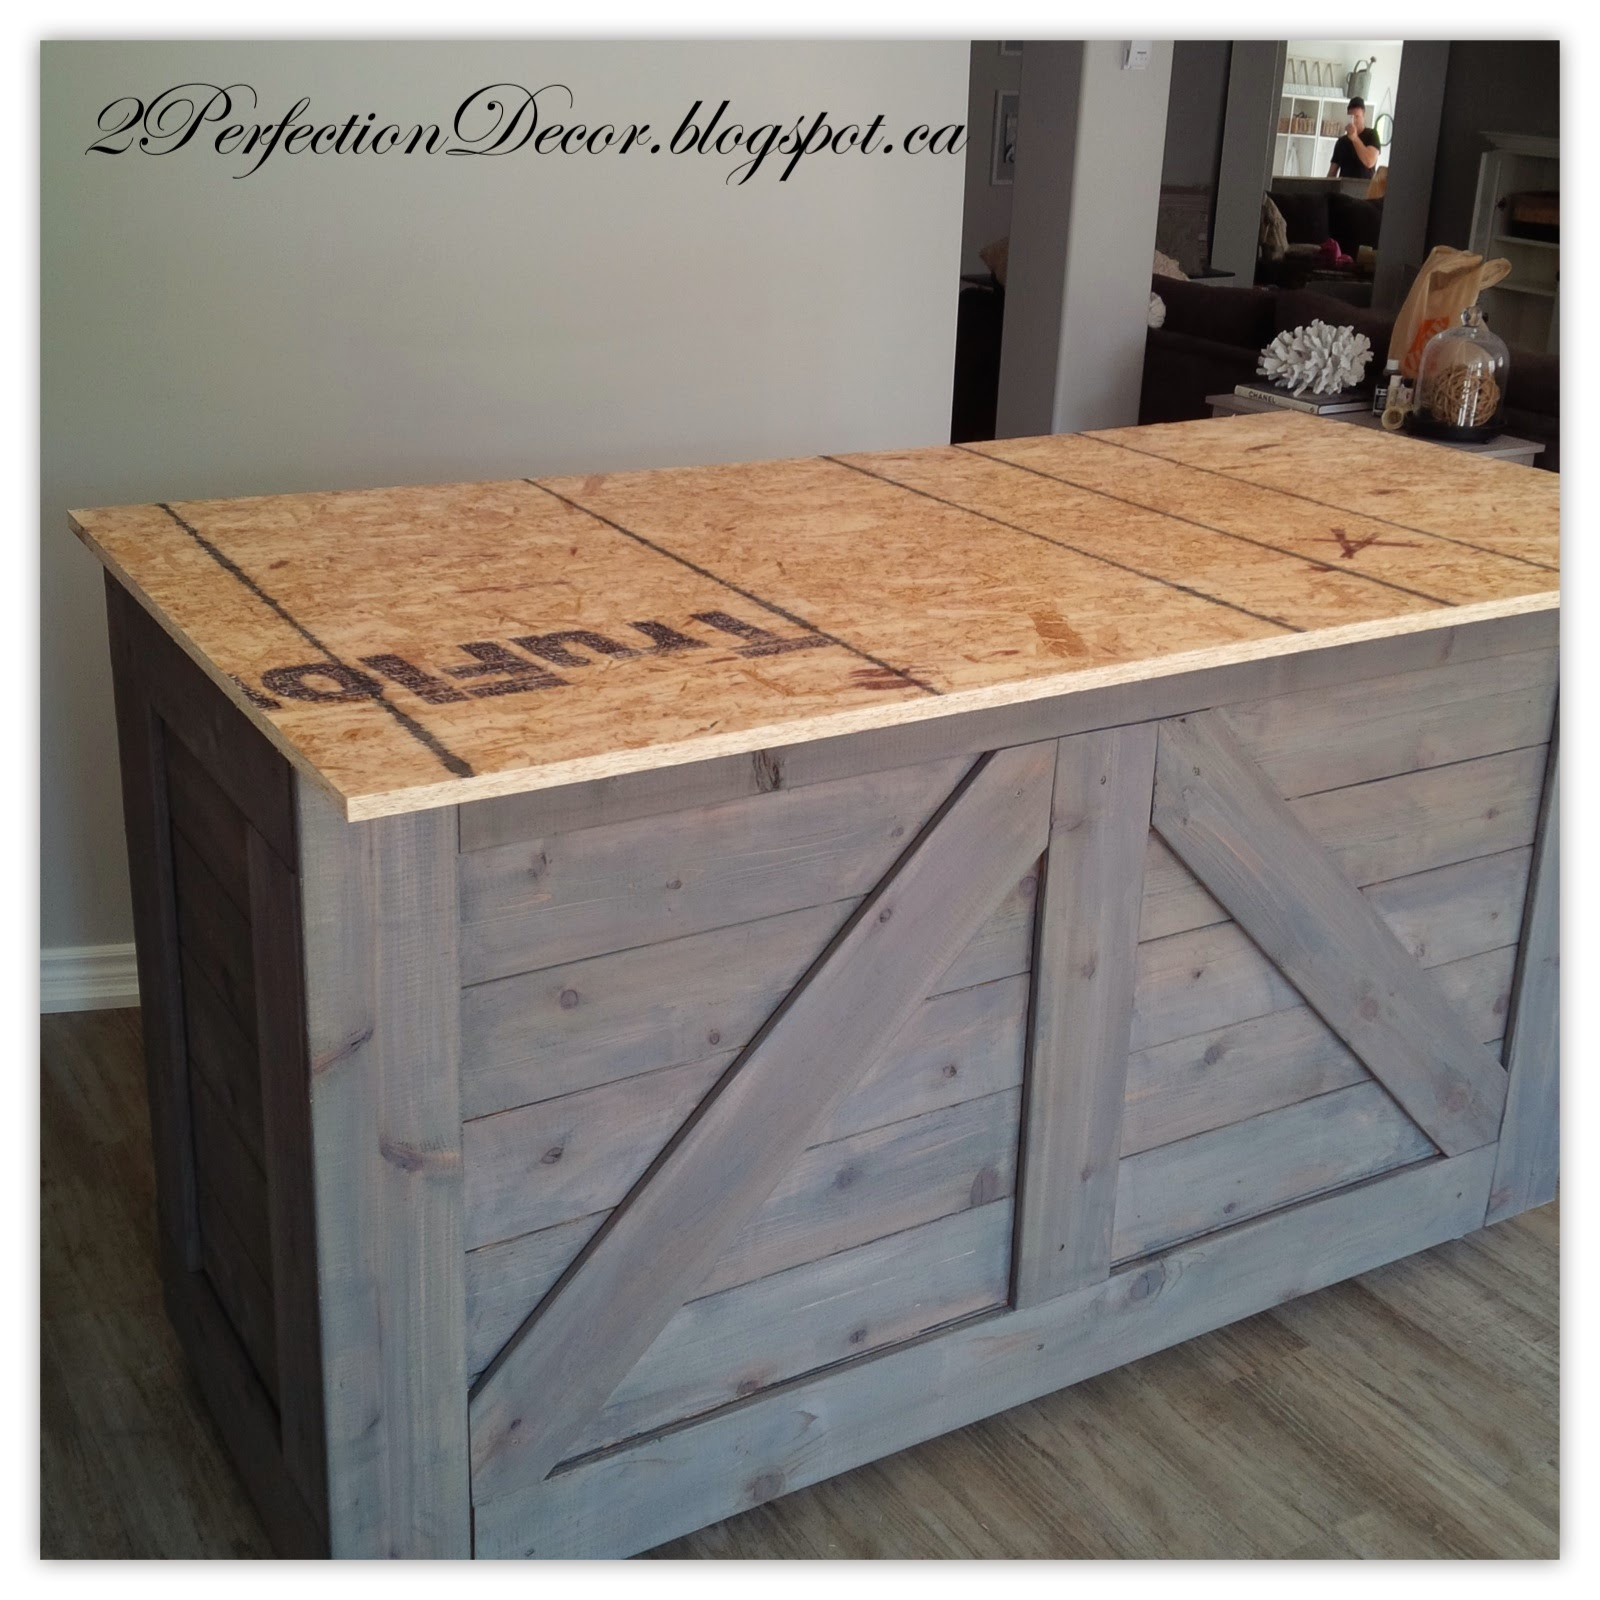 Diy Bar Part - 28: DIY Bar Using An IKEA Cabinet And Reclaimed Wood By 2Perfection Decor Blog  Featured On Remodelaholic